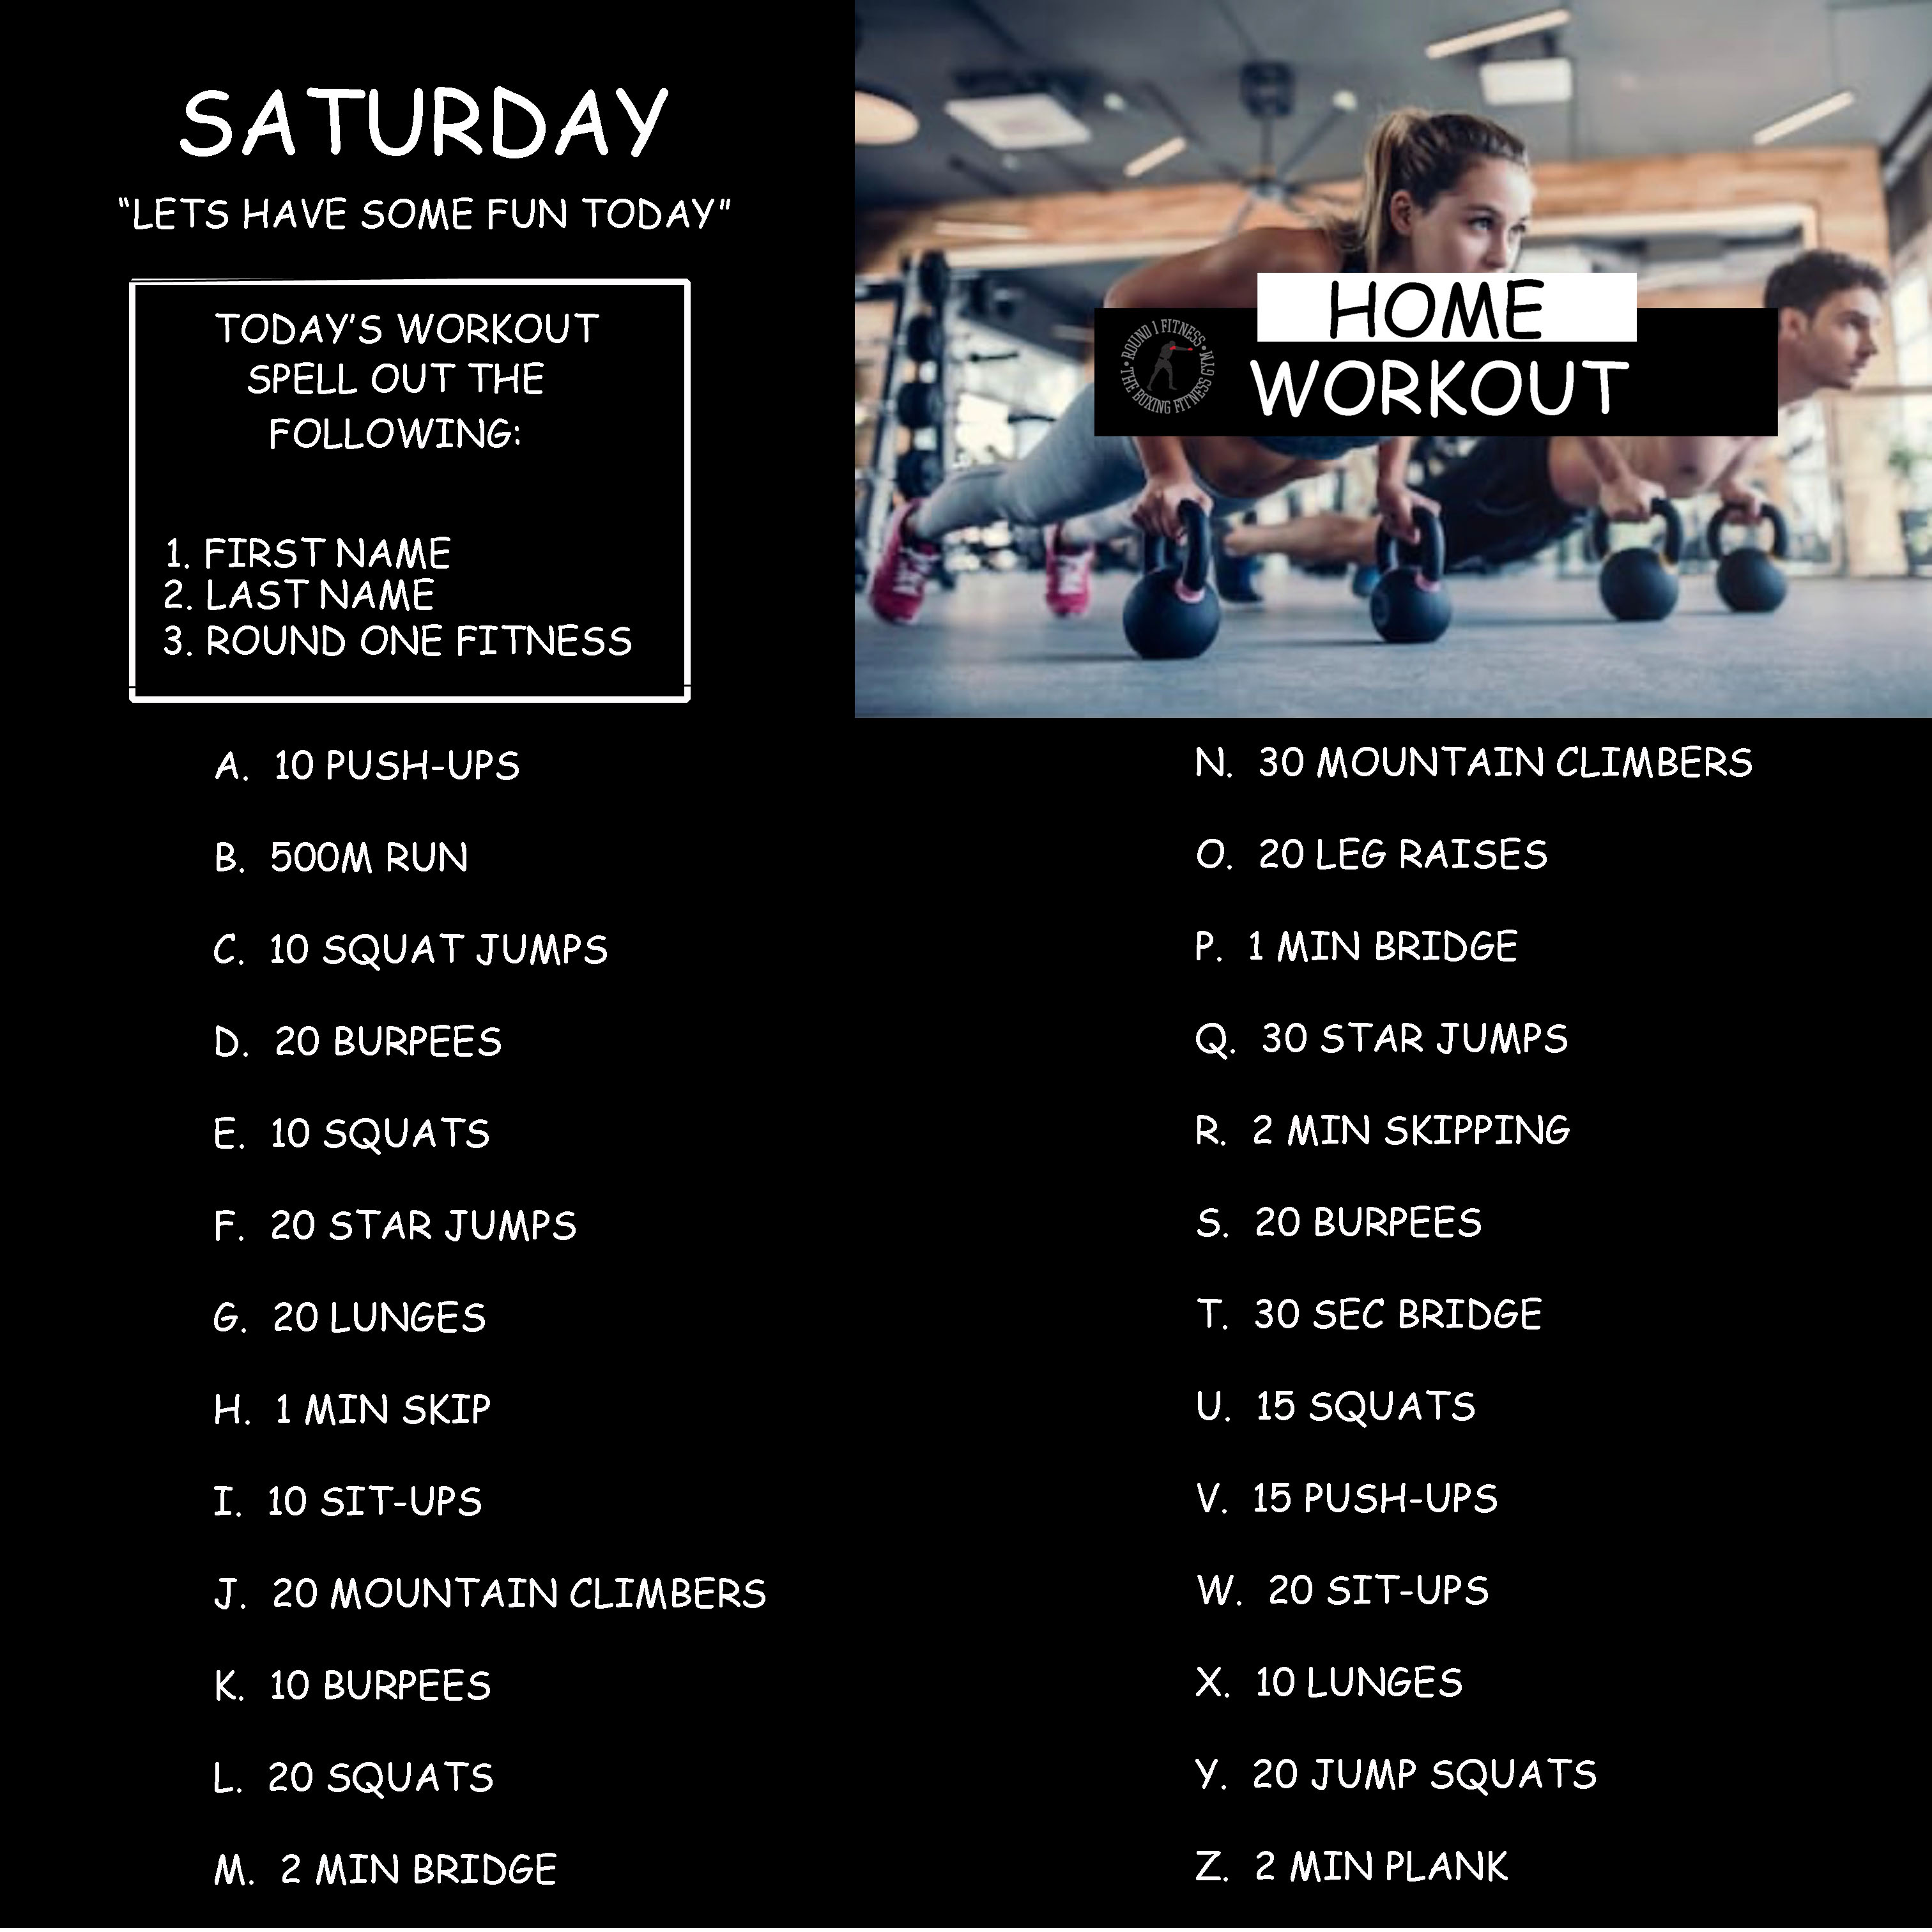 Home Workout:  Saturday, March 28th